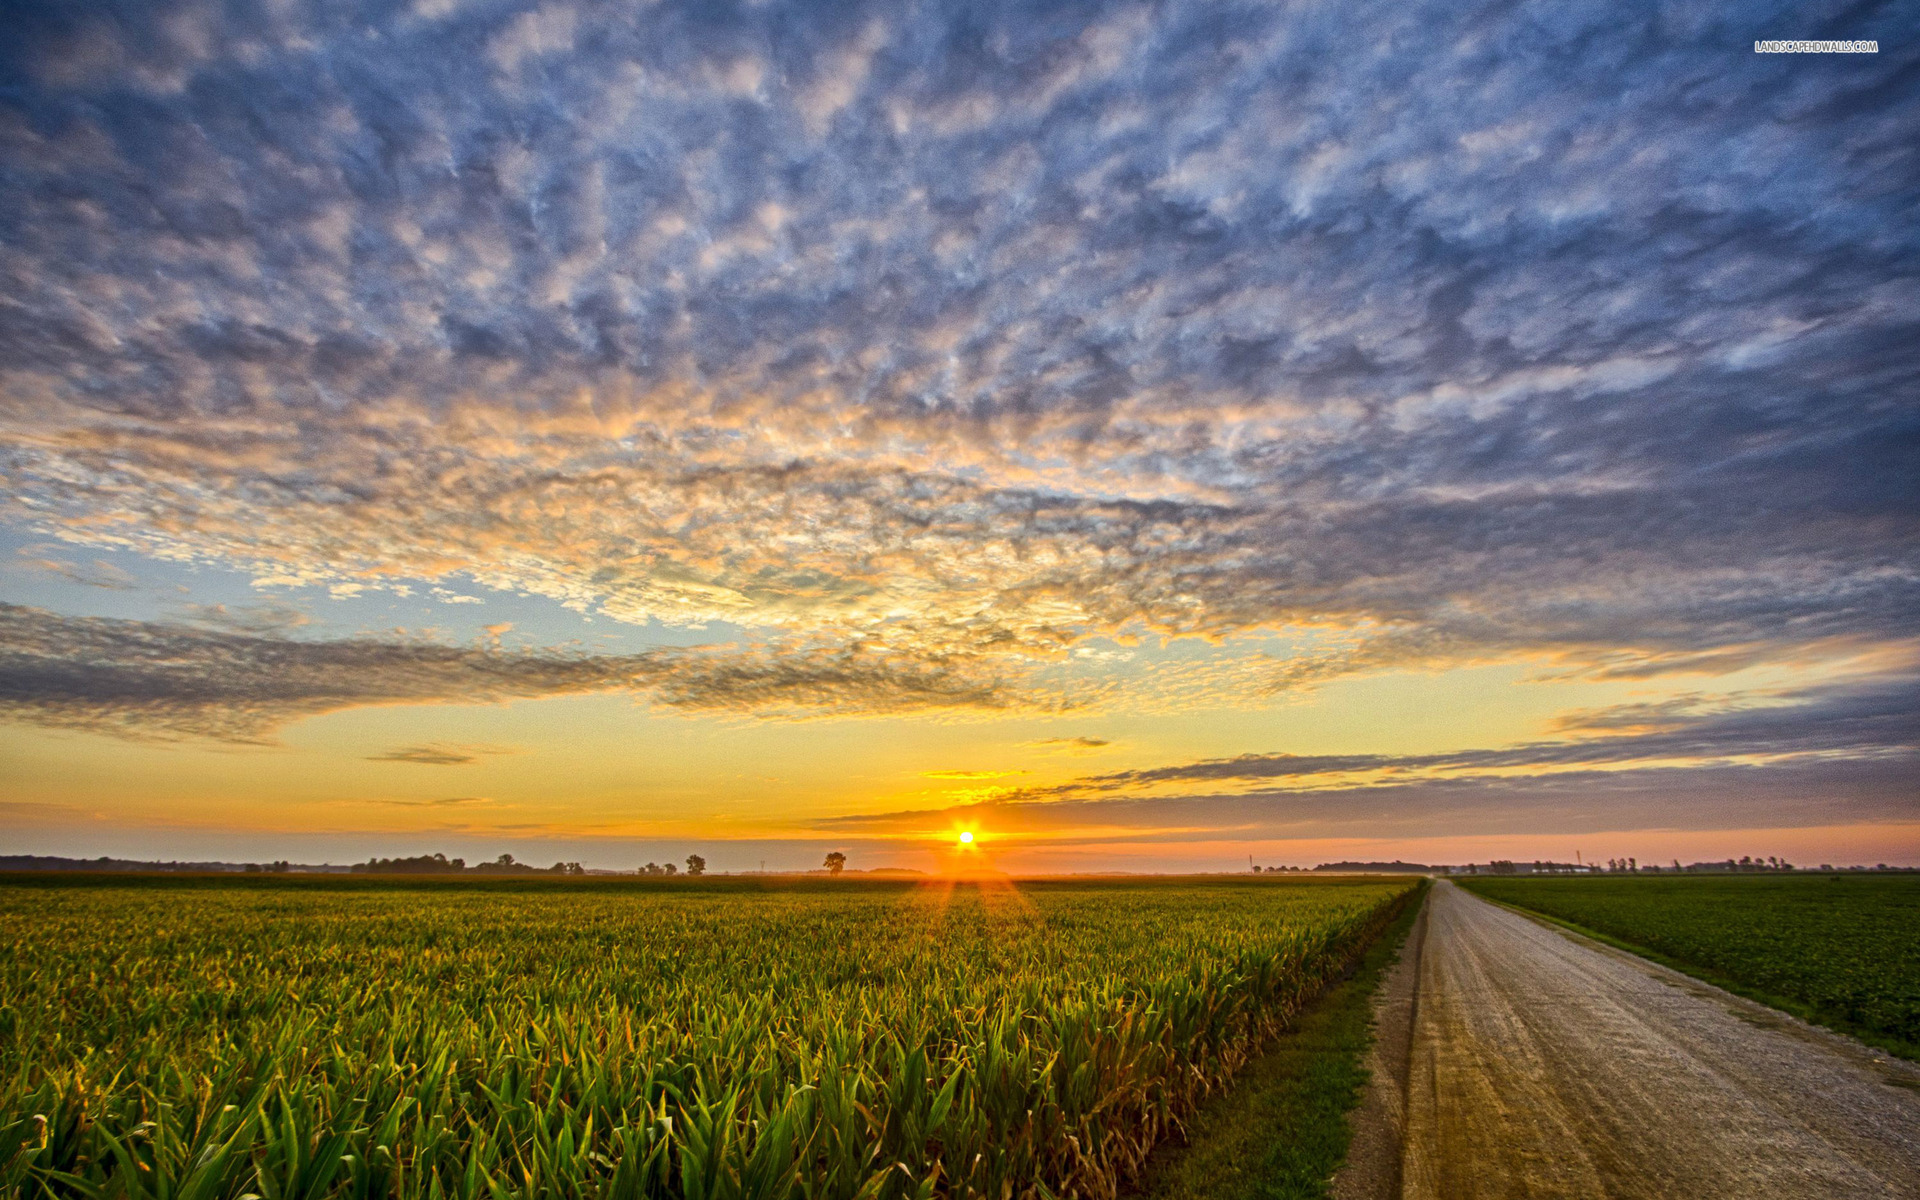 Corn Field Road Clouds Sunset wallpapers | Corn Field Road ...